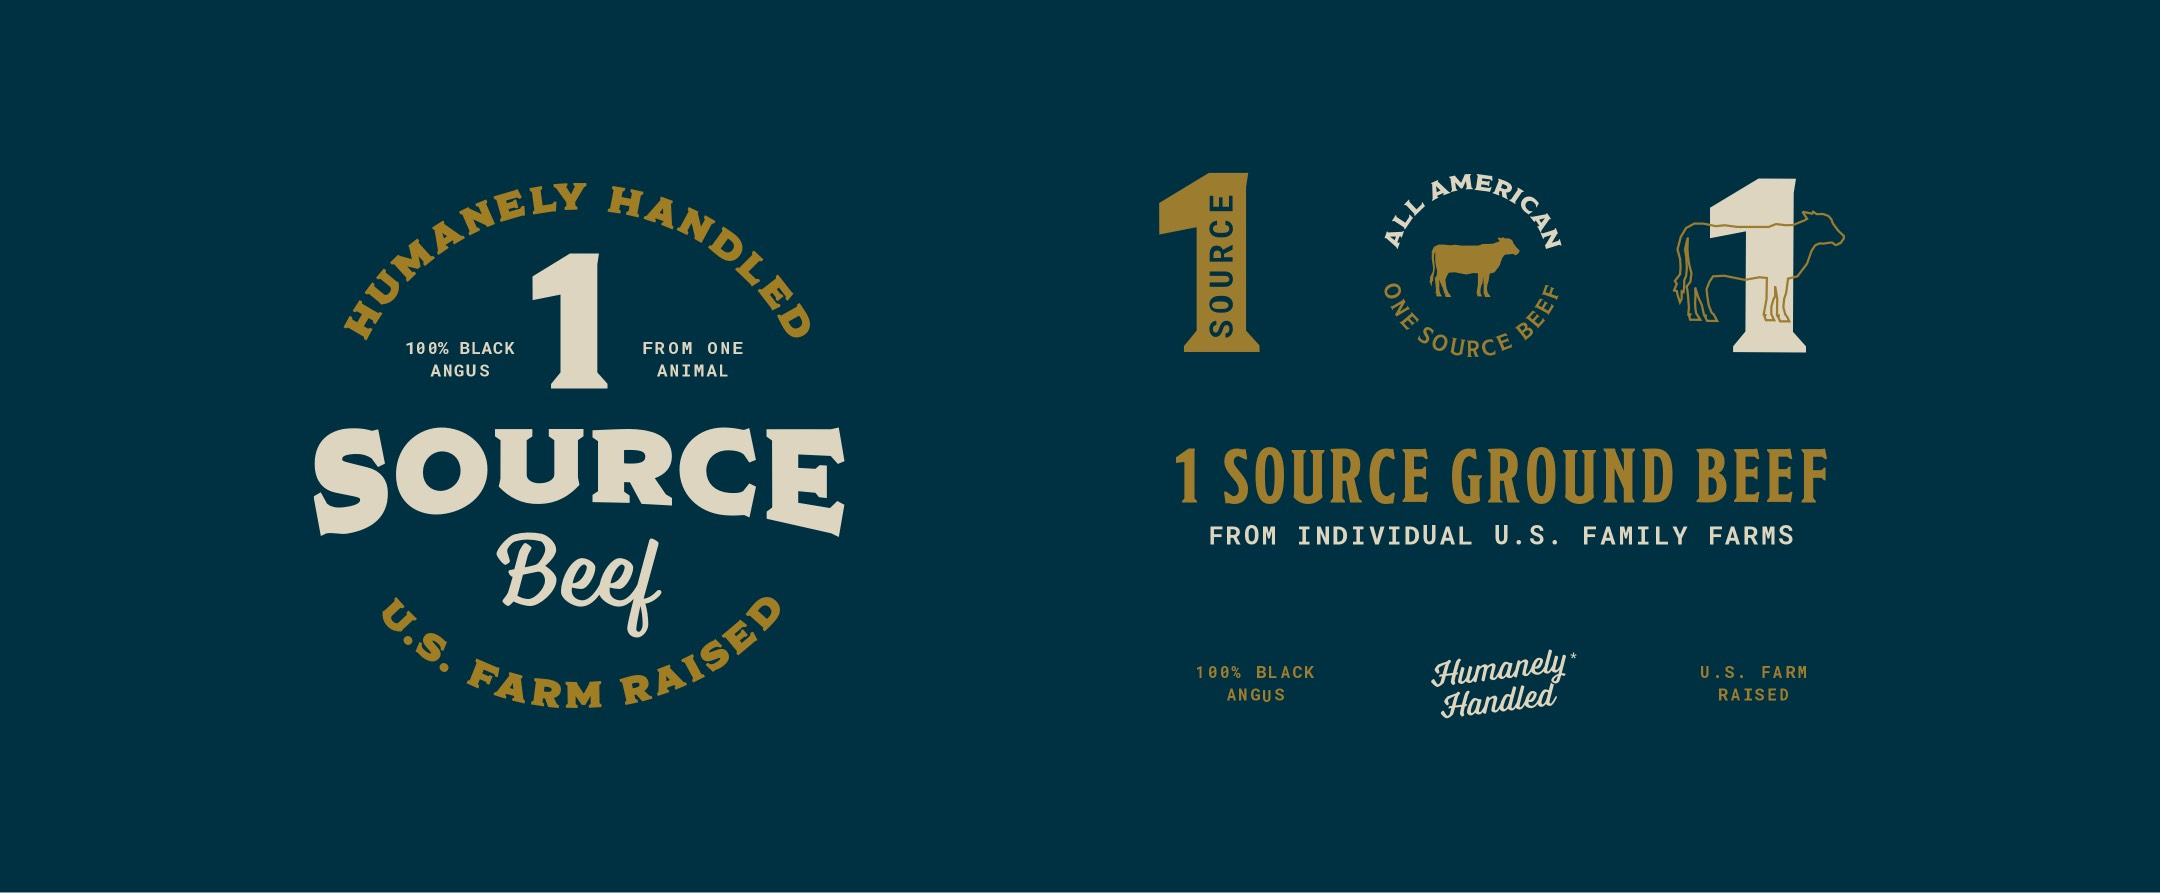 1 source ground beef logos and claims